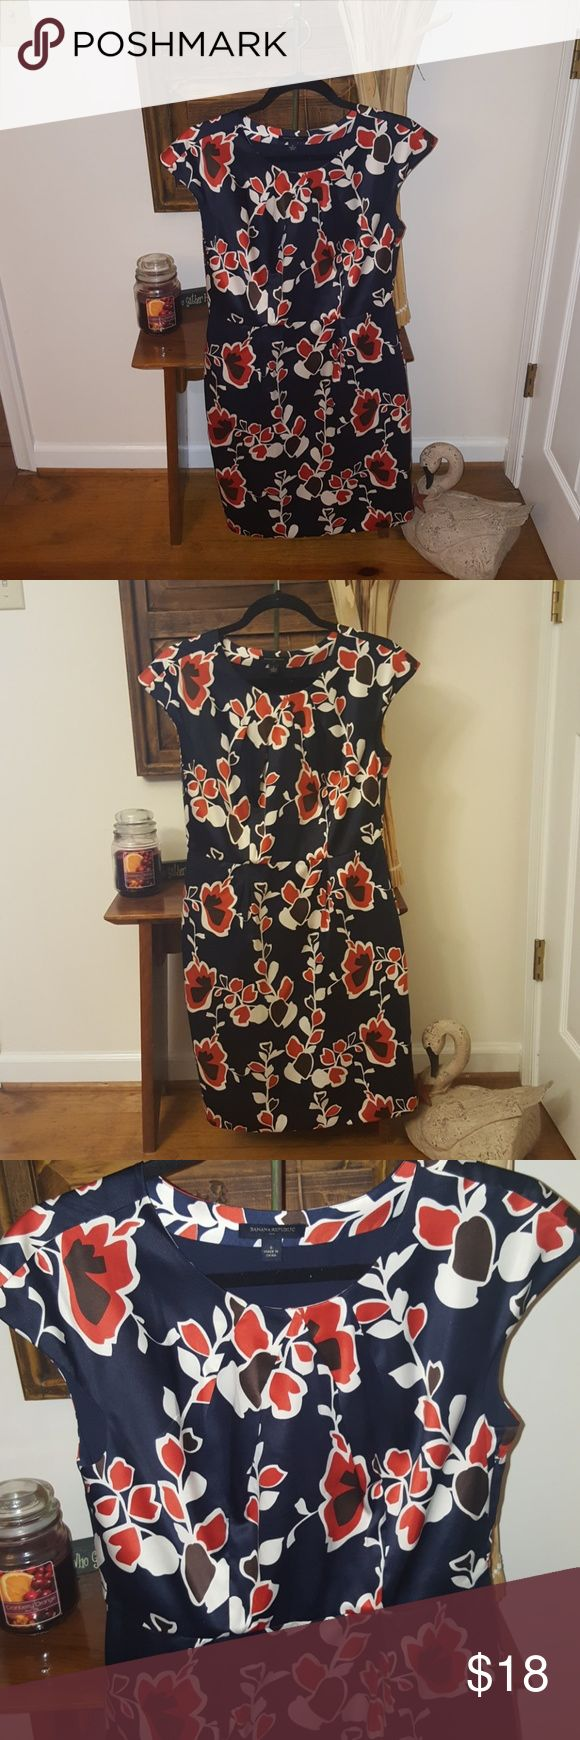 Beautiful dress Navy, Autumn orange, brown, and cream dress. Lovely fall floral design. Excellent condition. Banana Republic Dresses Midi